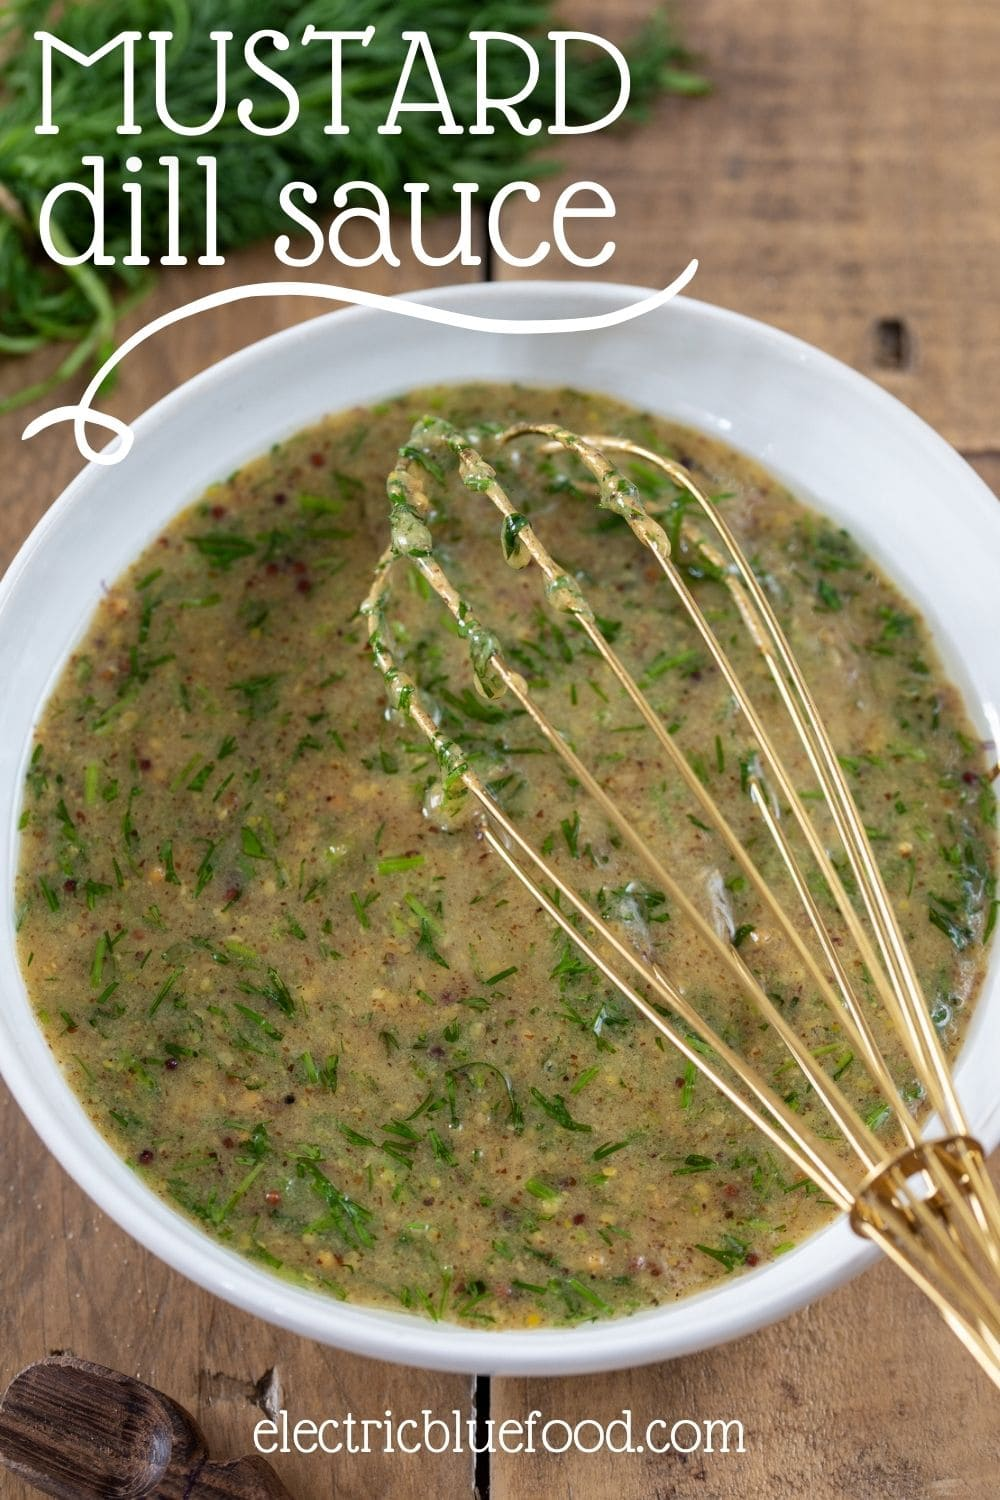 Swedish-style dill mustard sauce to use on smoked fish or as salad dressing. A mustard sauce with a sweet and sour quality and the herbal flavour of freshly minced dill.